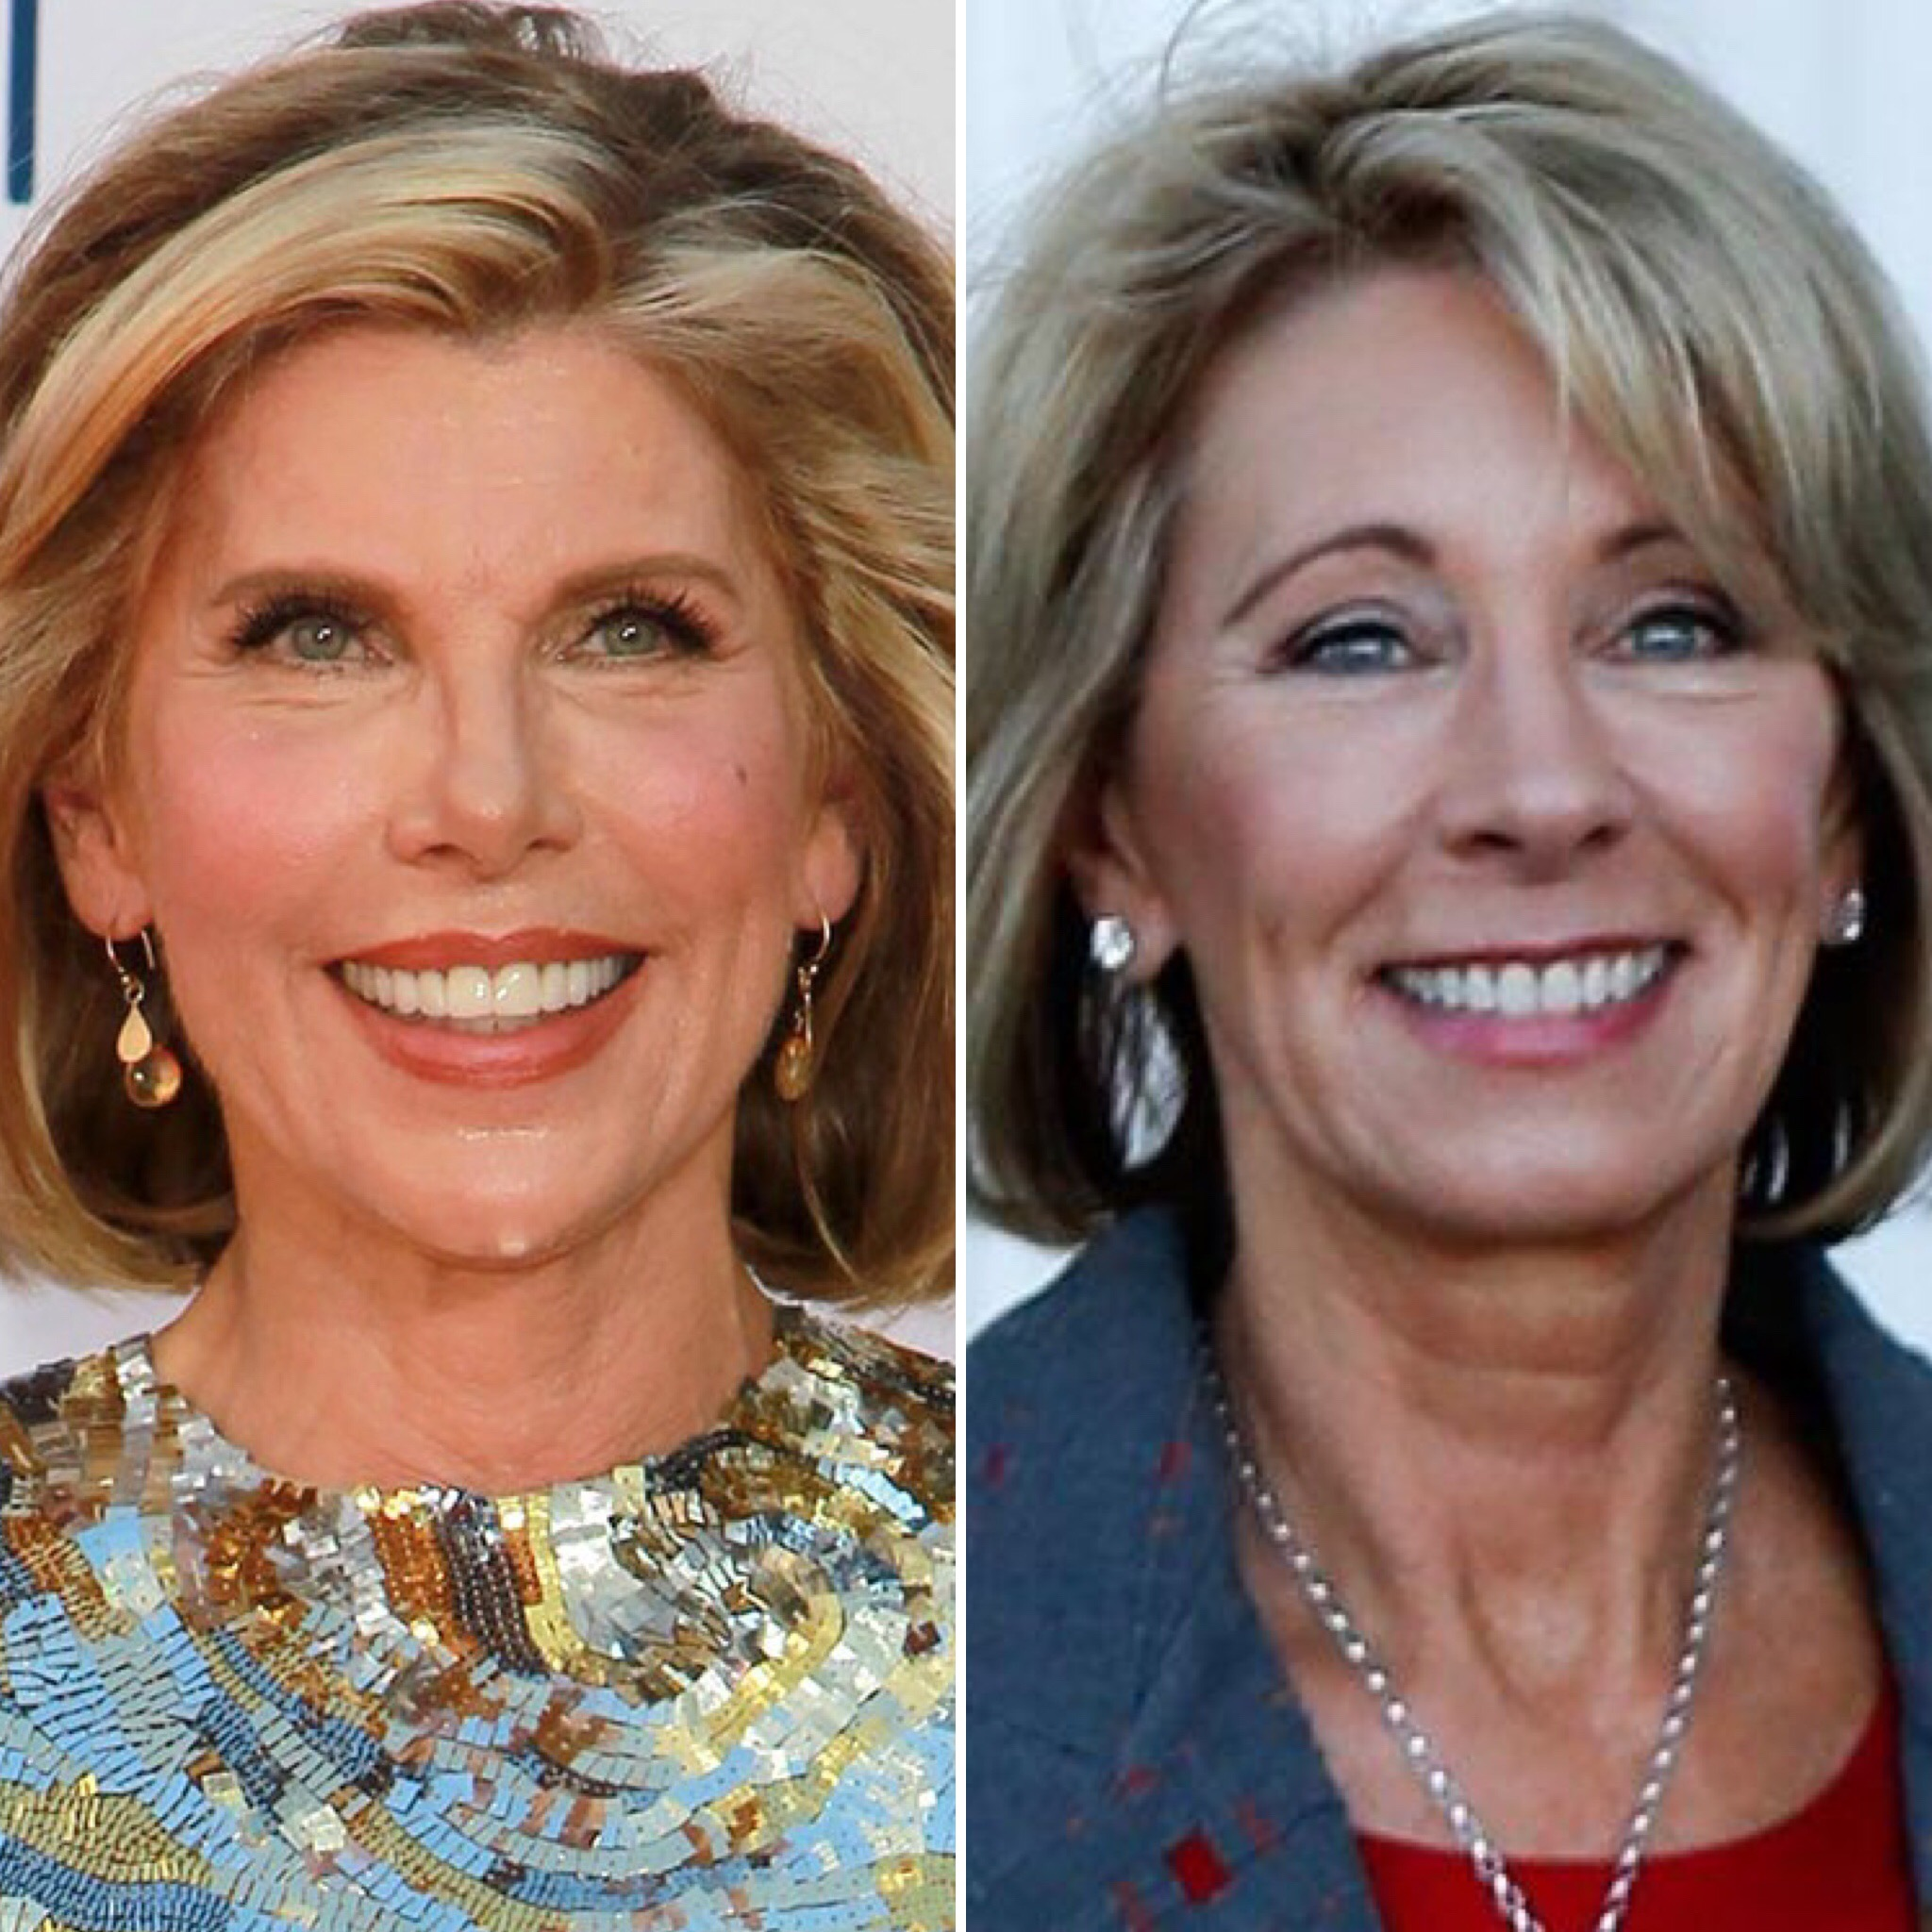 Christine Baranski (L) and Betsy DeVos